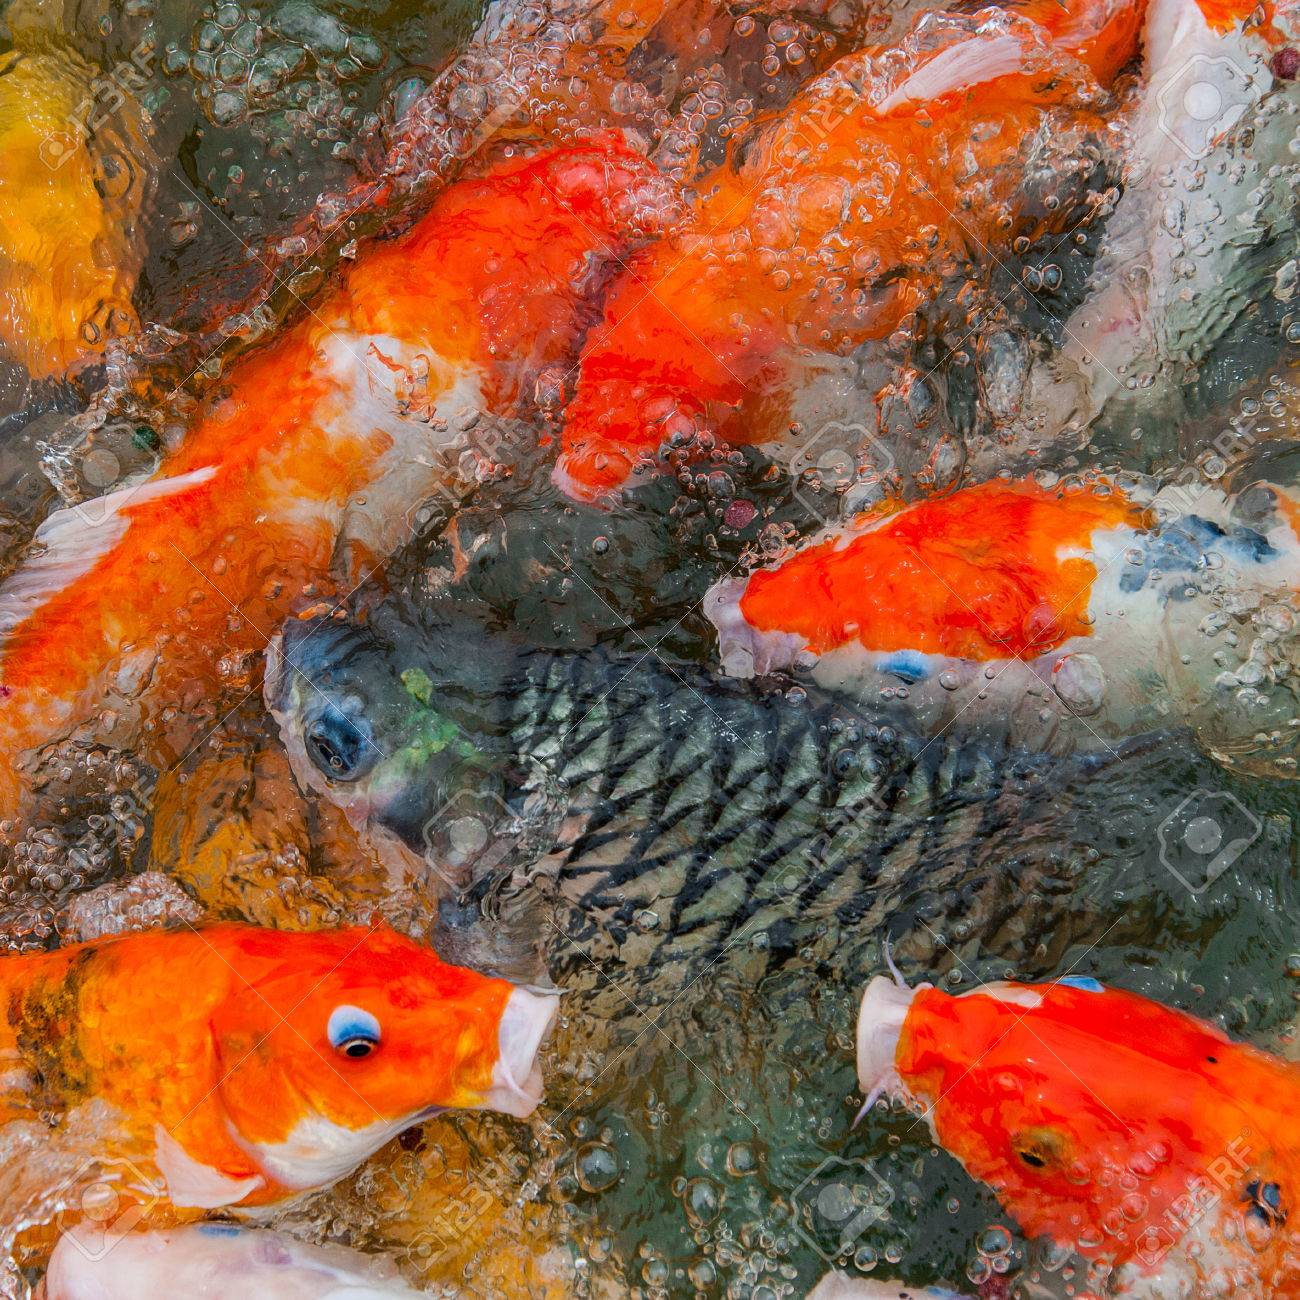 Colorful Koi Or Carp Chinese Fish In Water Stock Photo, Picture And ...